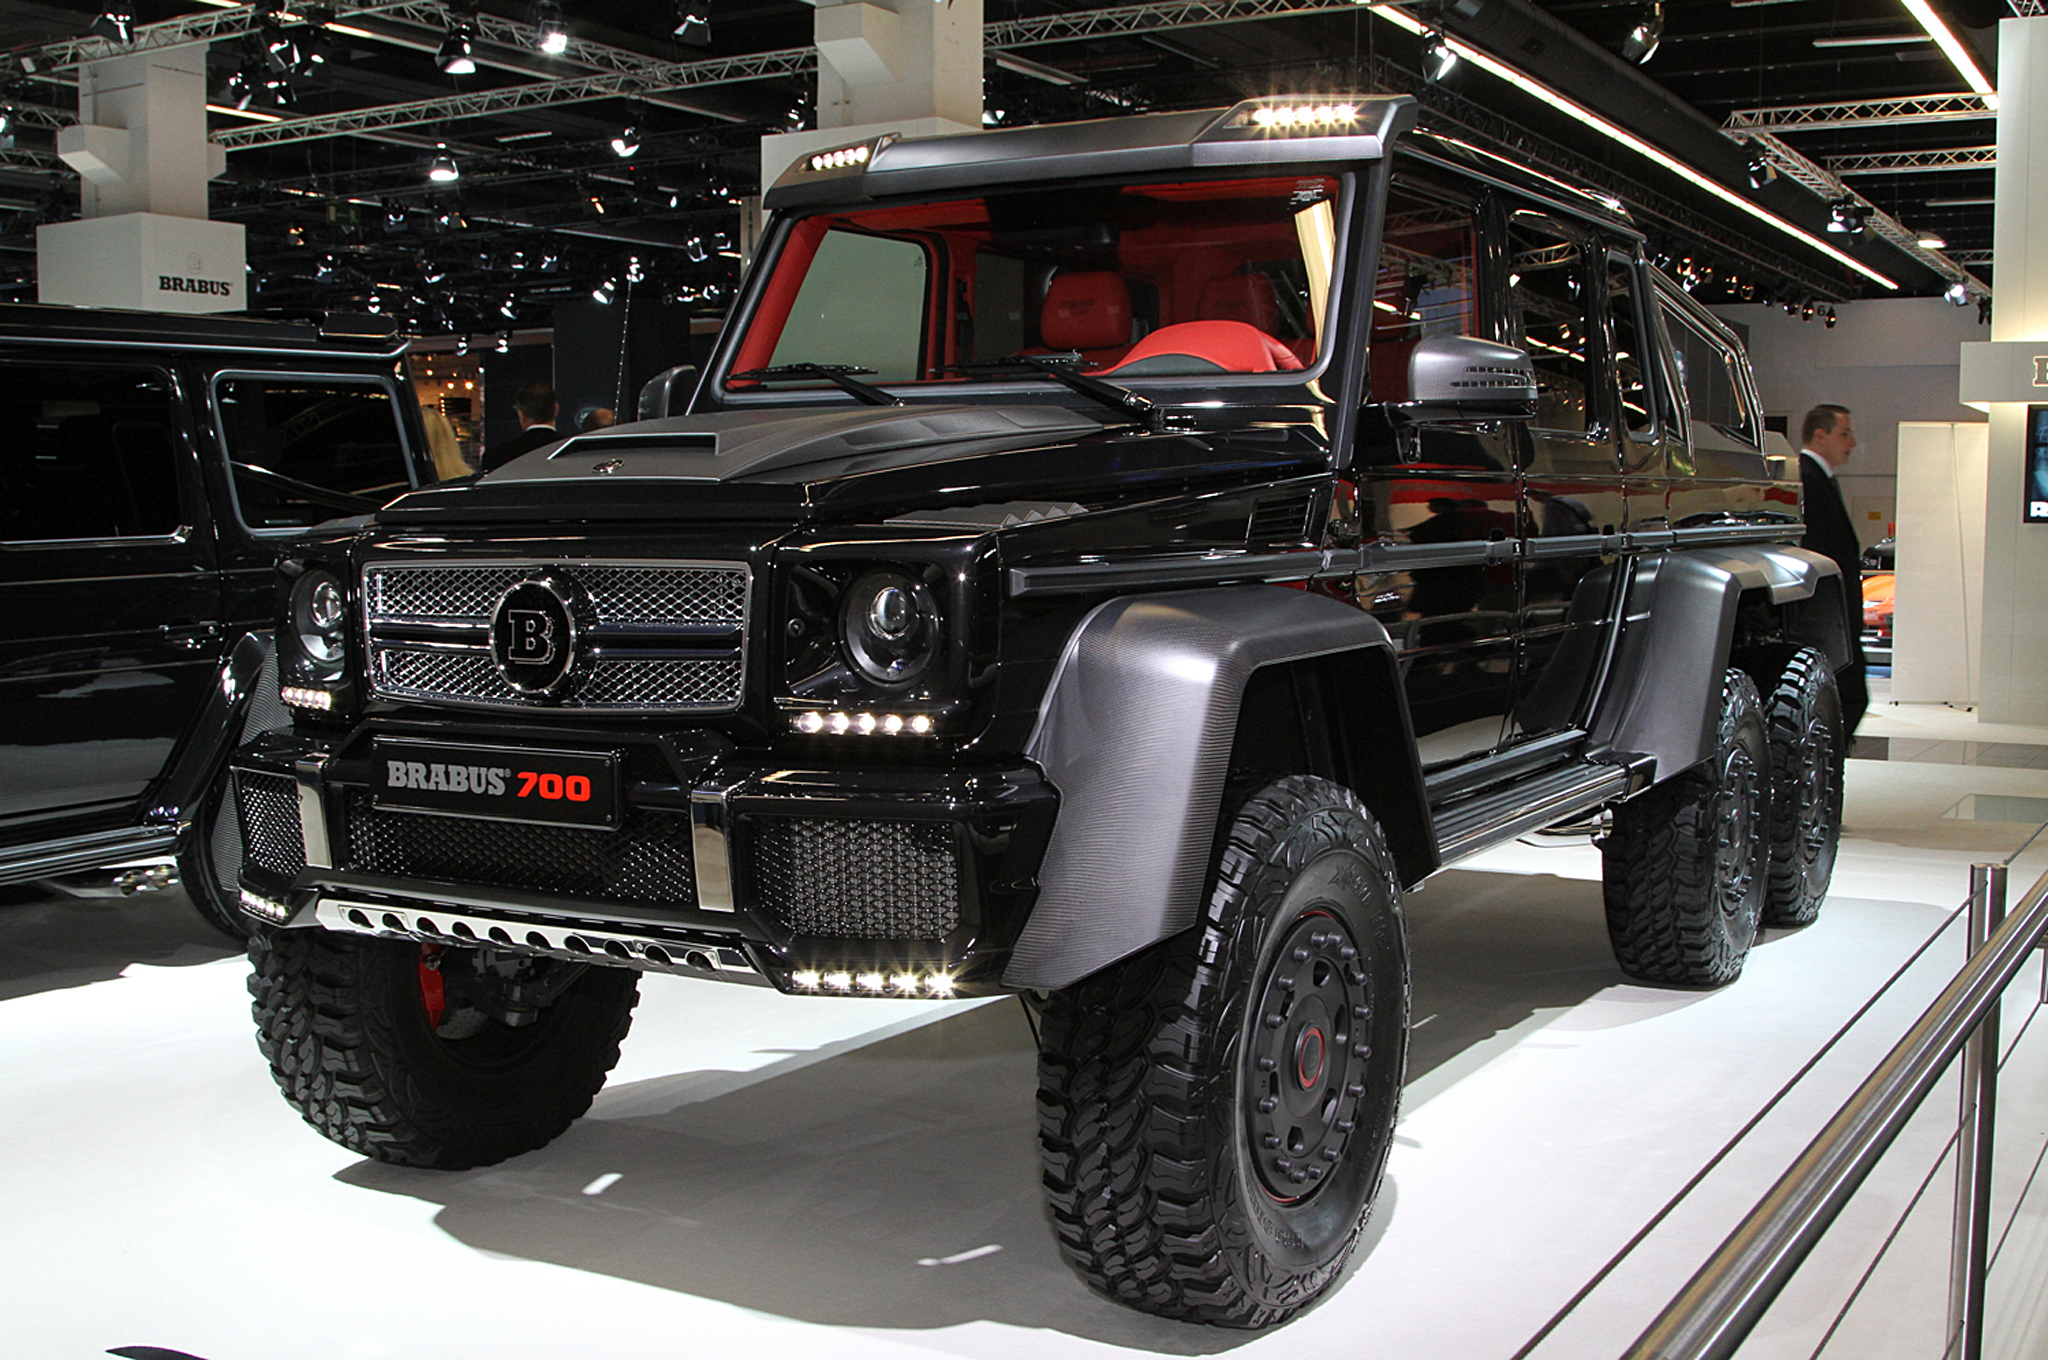 Brabus B63S-700 6x6 is an Even Wilder Six-Wheel G-Wagen - Motor Trend